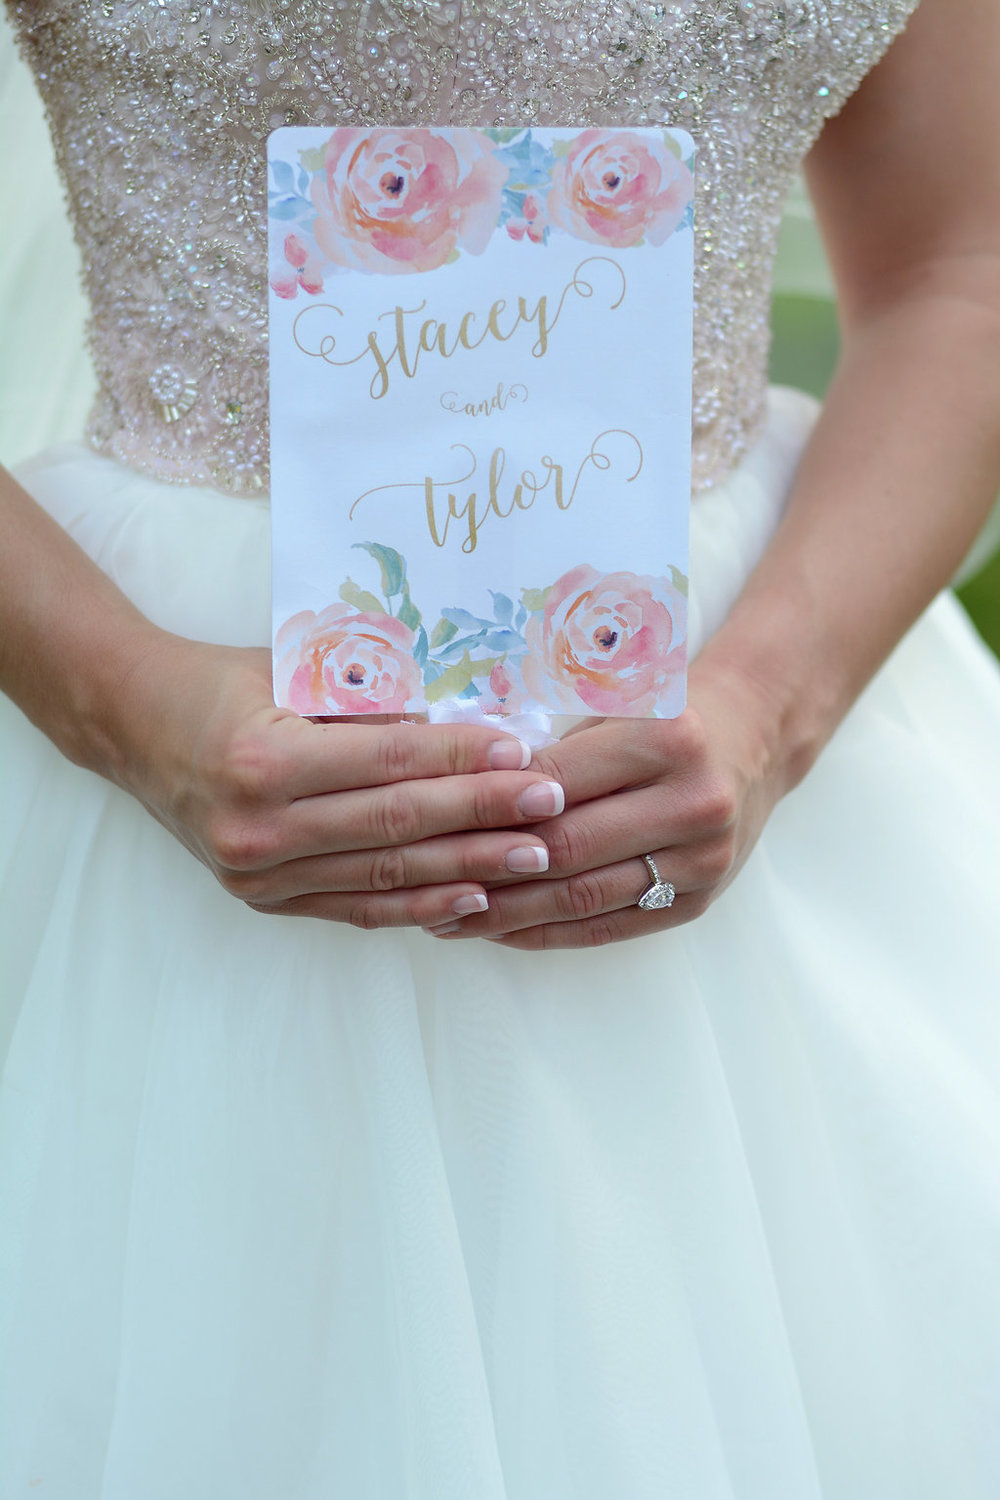 Invited by Dani made beautiful stationery that were perfect for this show stopping photo shoot!